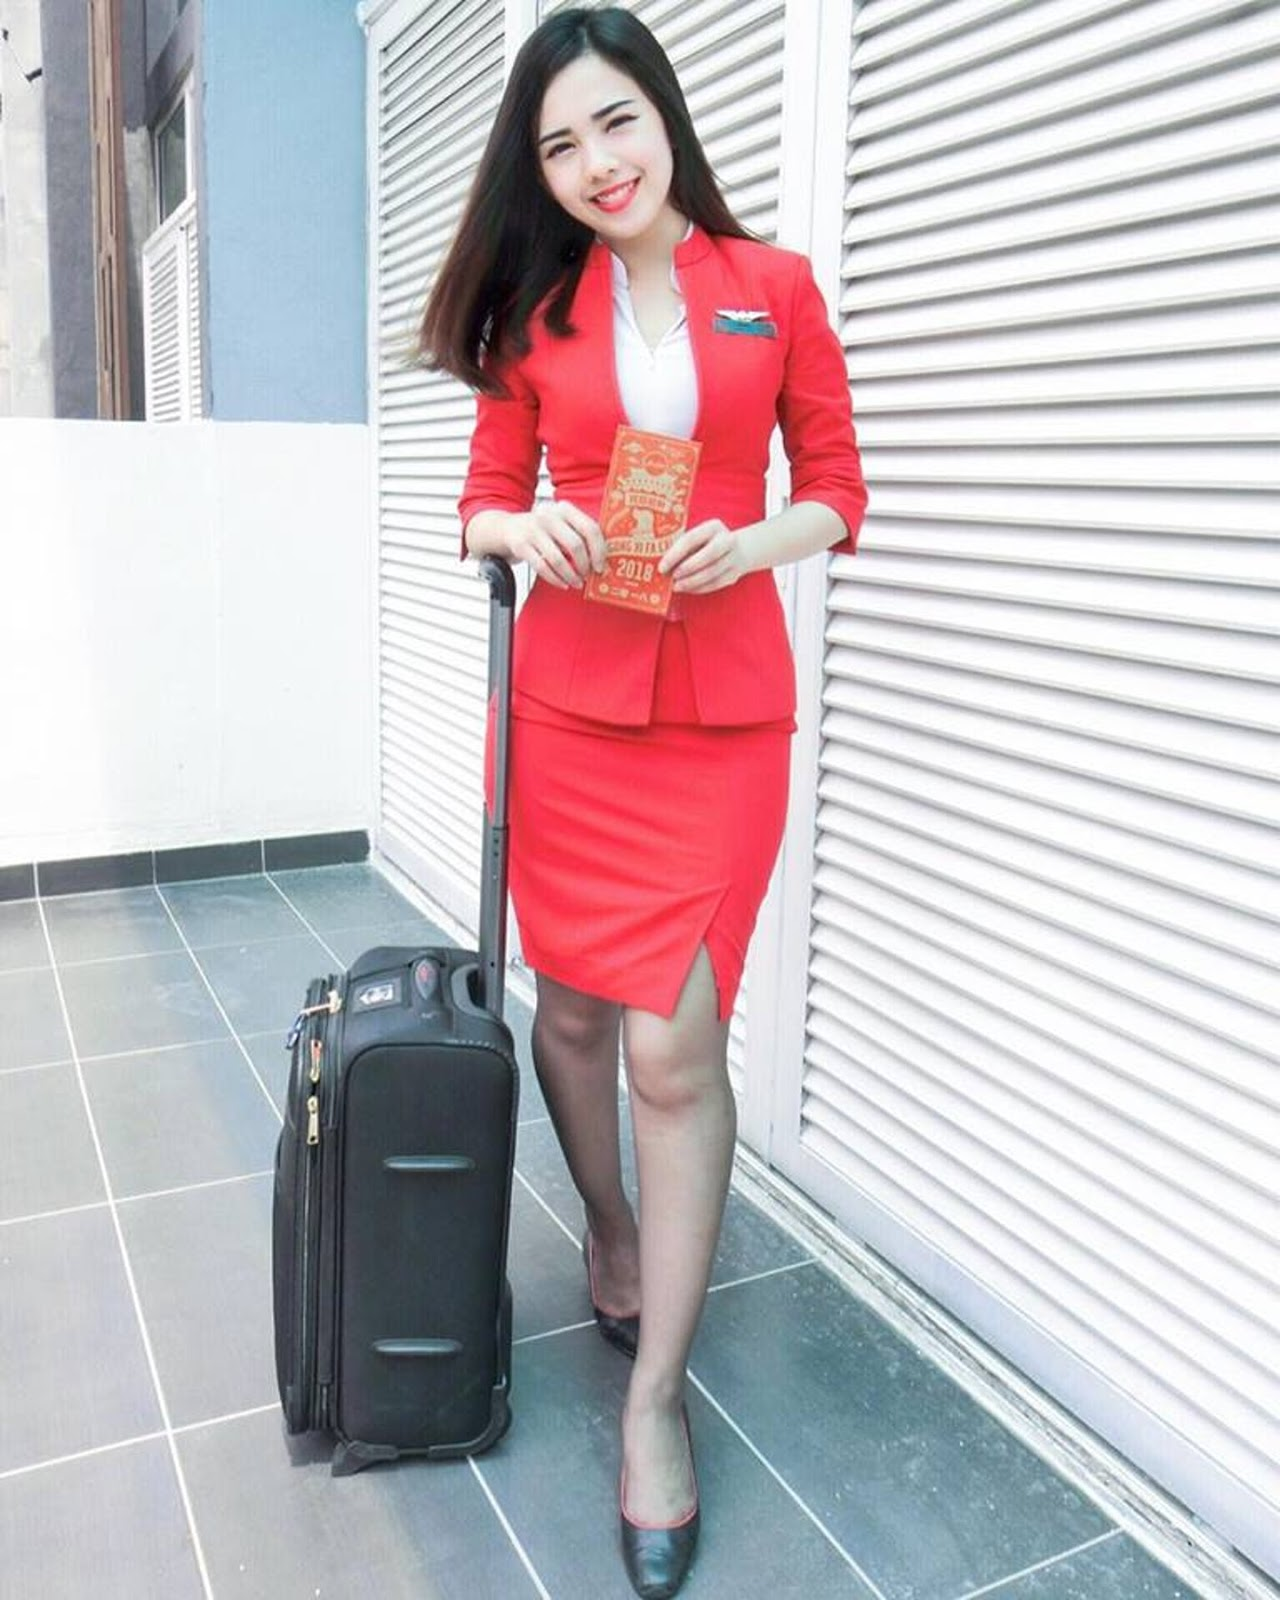 The Ipoh-born said being a cabin crew member in AirAsia has always been her goal since secondary school.